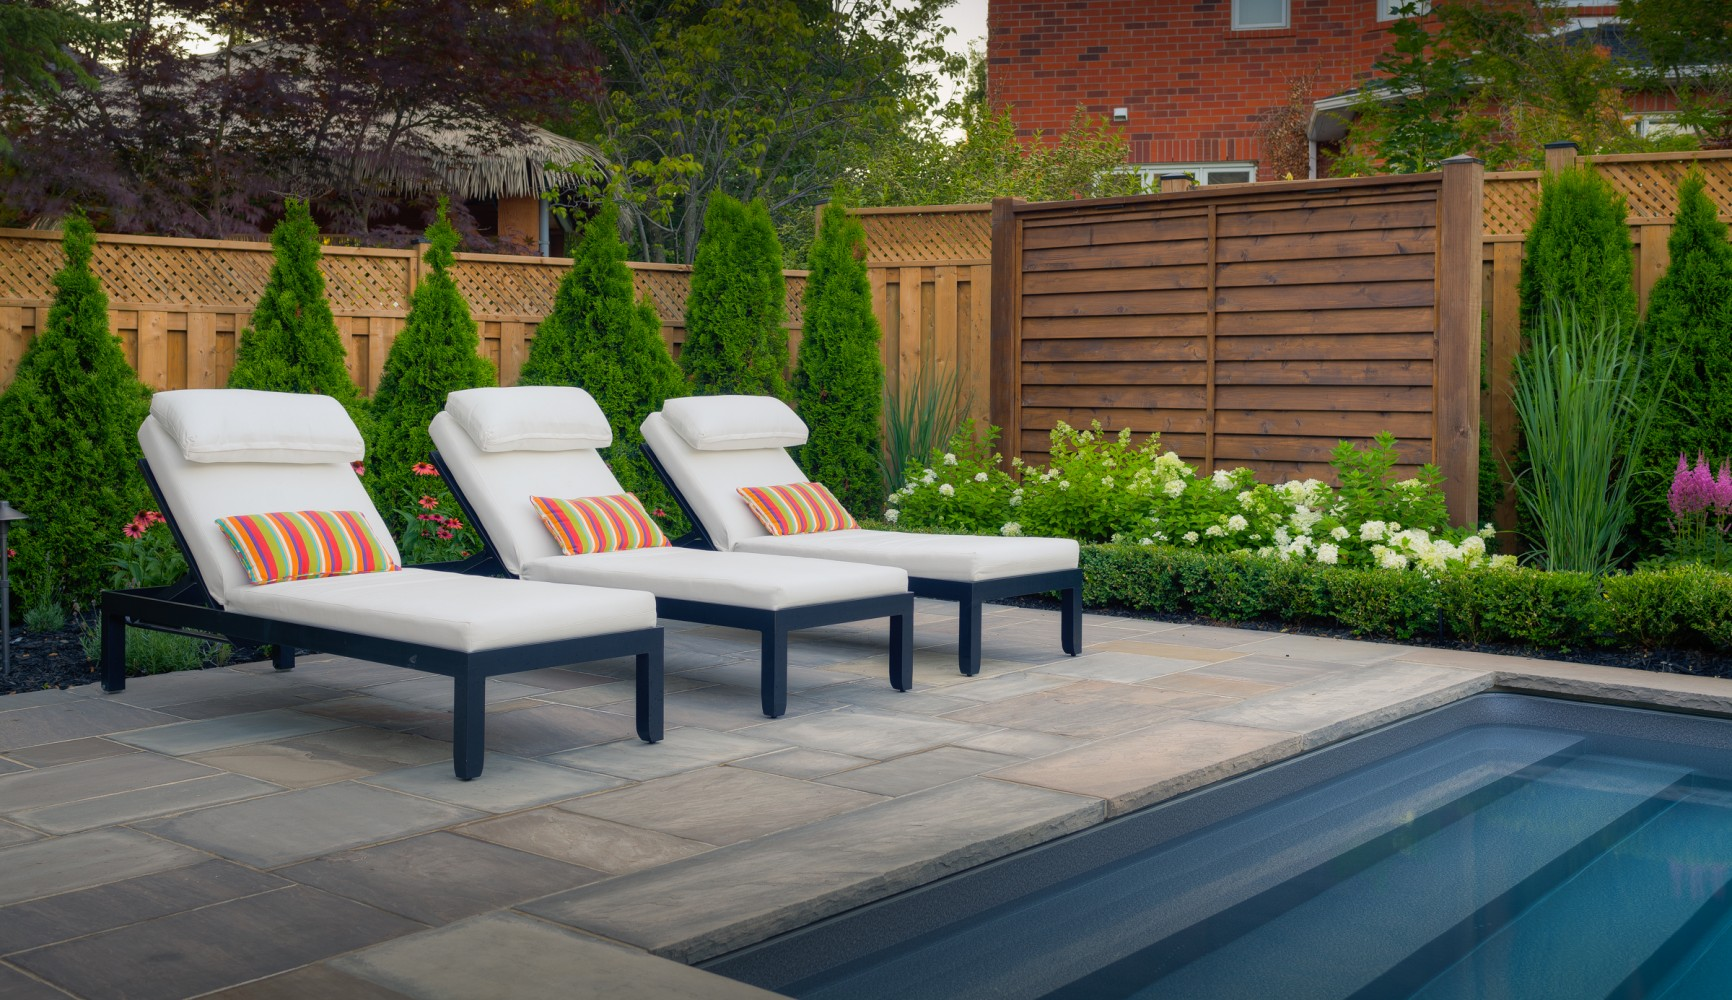 Oakville Outdoor Furniture Patio Furniture Burlington Ontario Sun Country Burlington